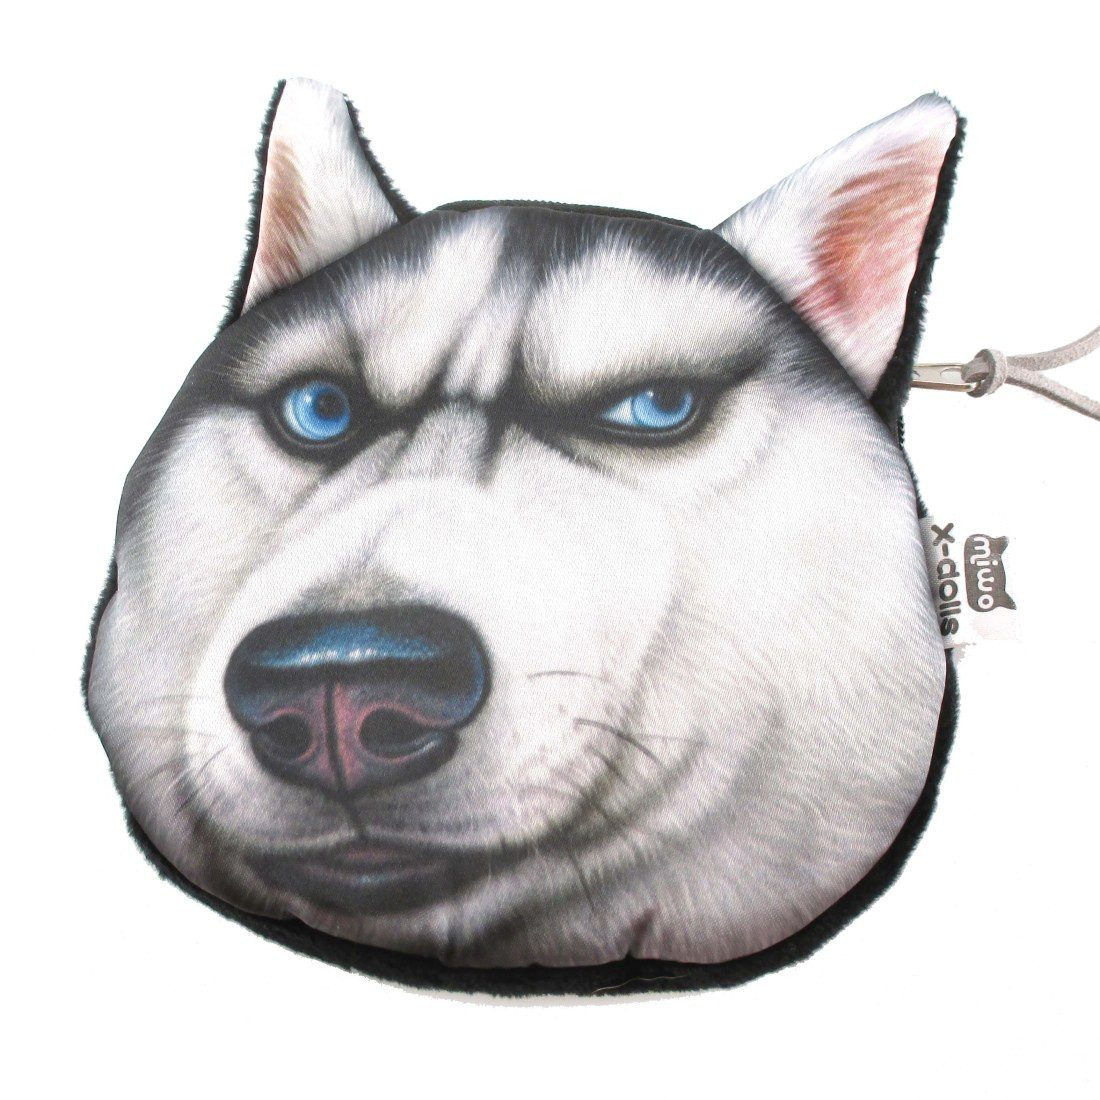 Siberian Husky Dog Animal Meme Coin Purse Make Up Bag